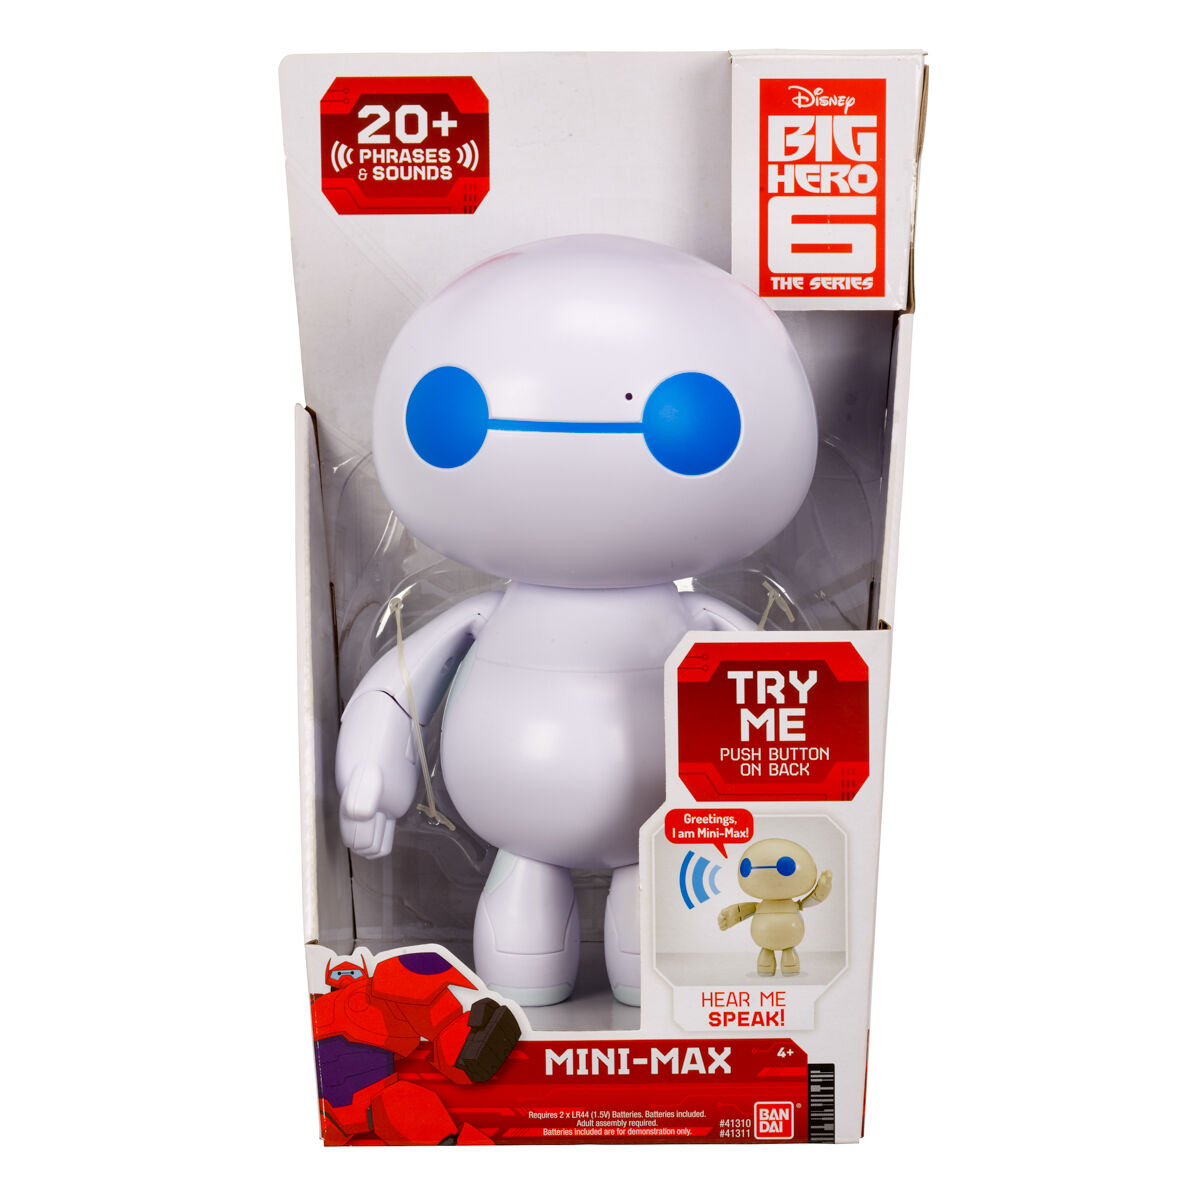 Disney Big Hero 6 Mini Max With Sounds And Phrases The Series Toys Games Tv Movie Character Toys